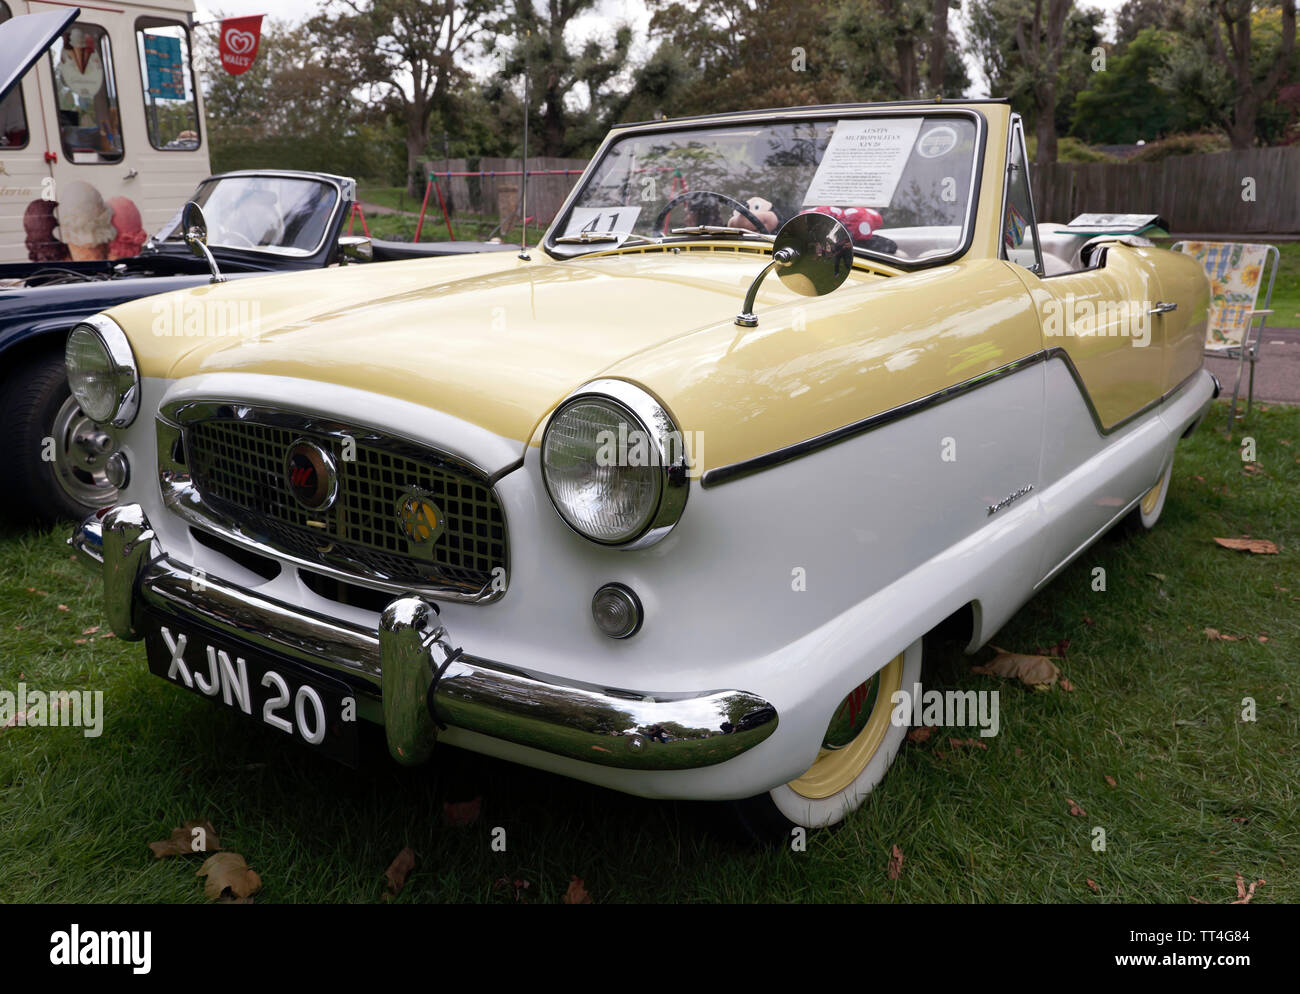 A 1960 Austin Metropolitan  on display at the Quay Green Classic Car Meet, part of  the 2018 Sandwich Festival, Kent - Stock Image